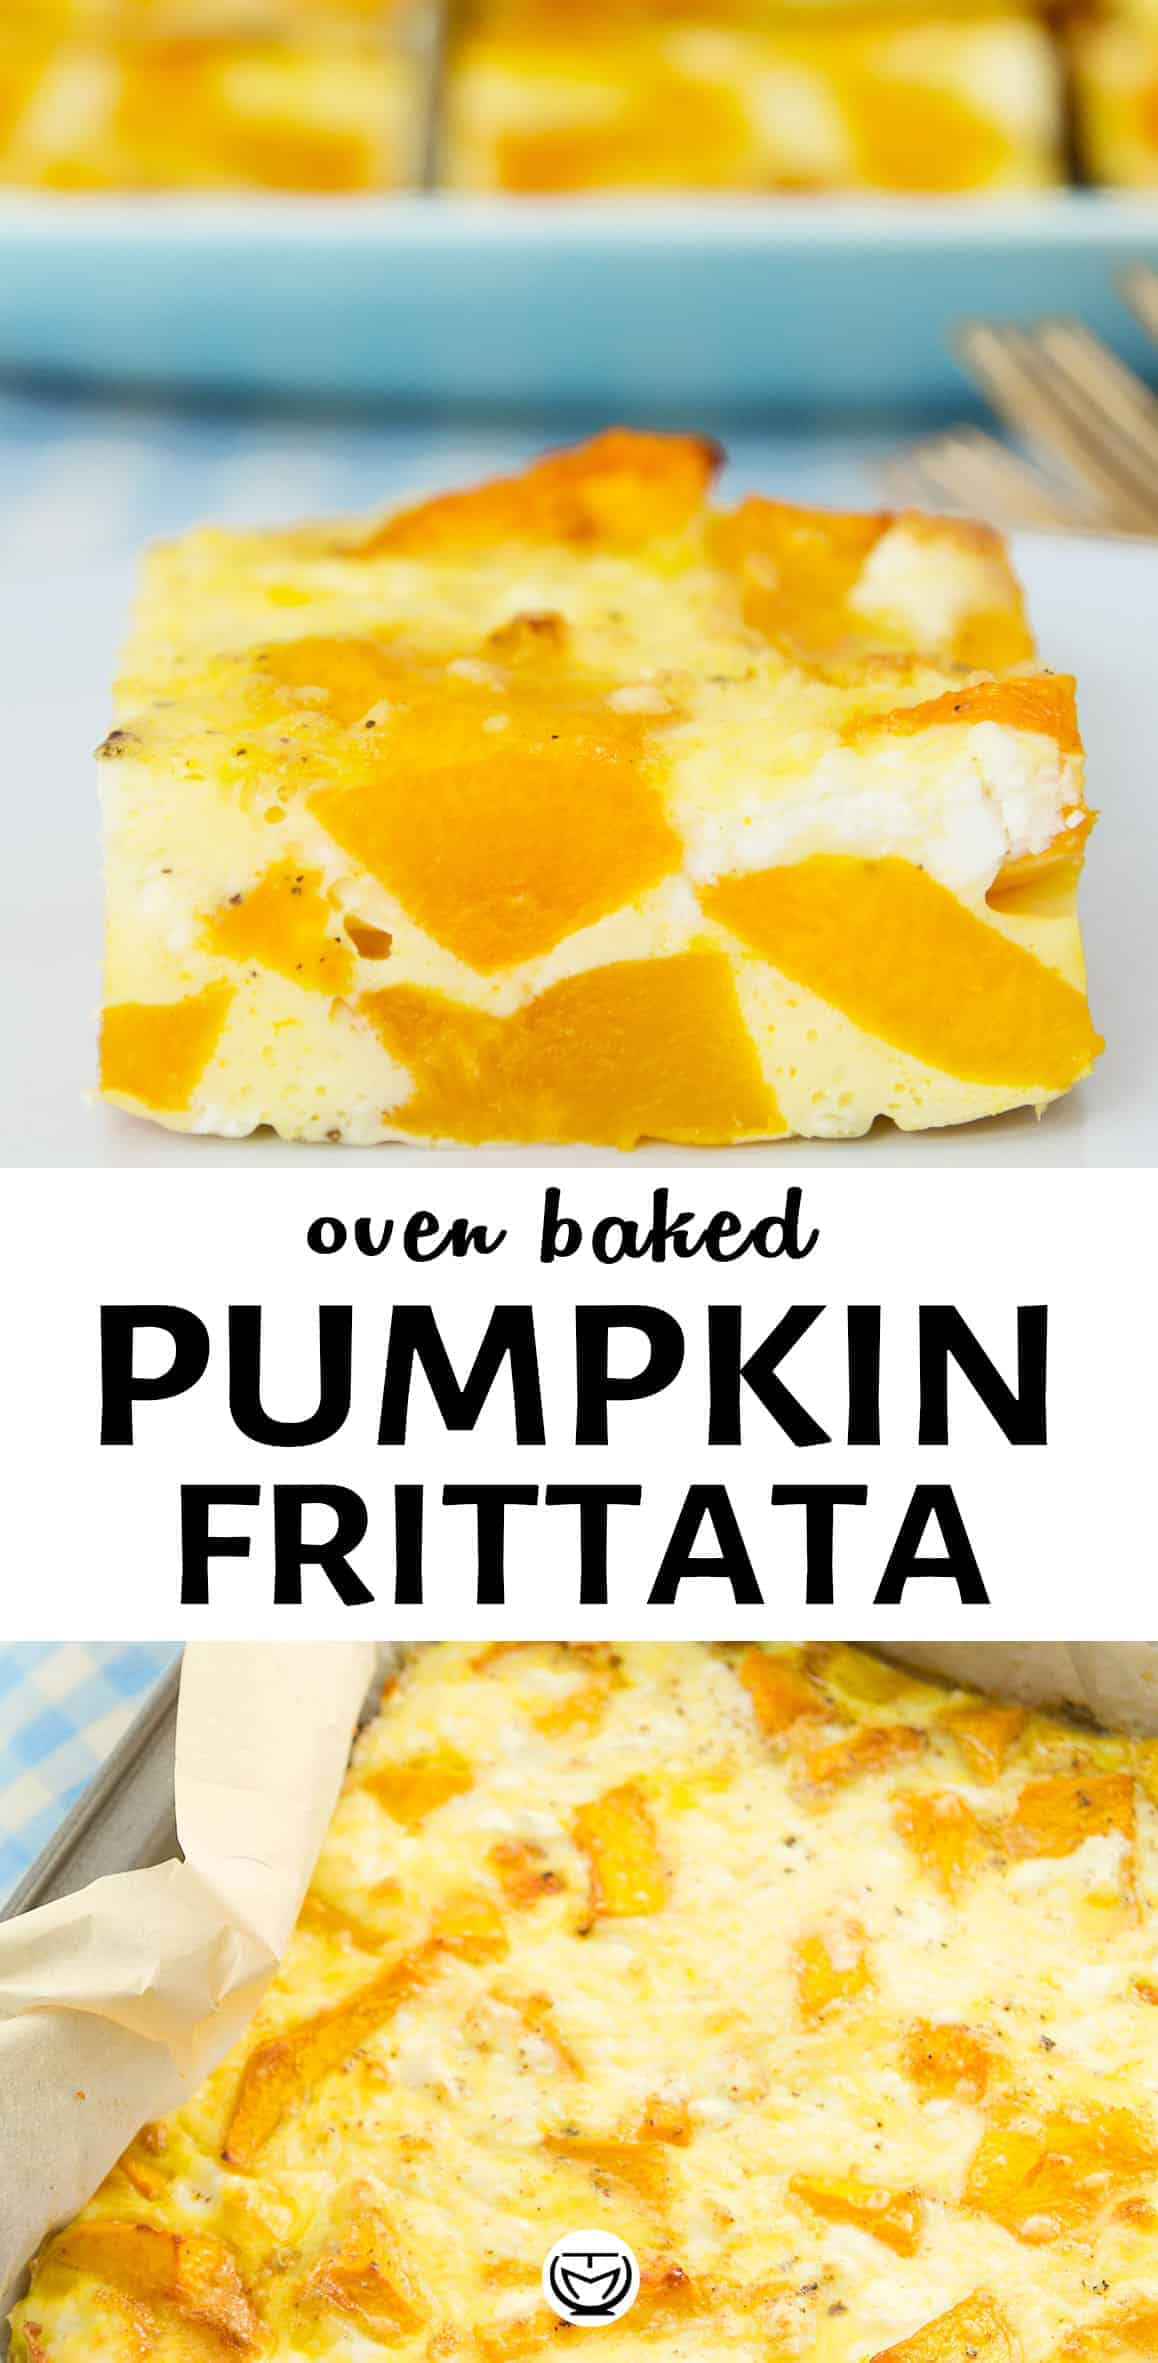 This hearty, delicious and healthy pumpkin frittata is super easy, loaded with nutrients and perfect for brunch!